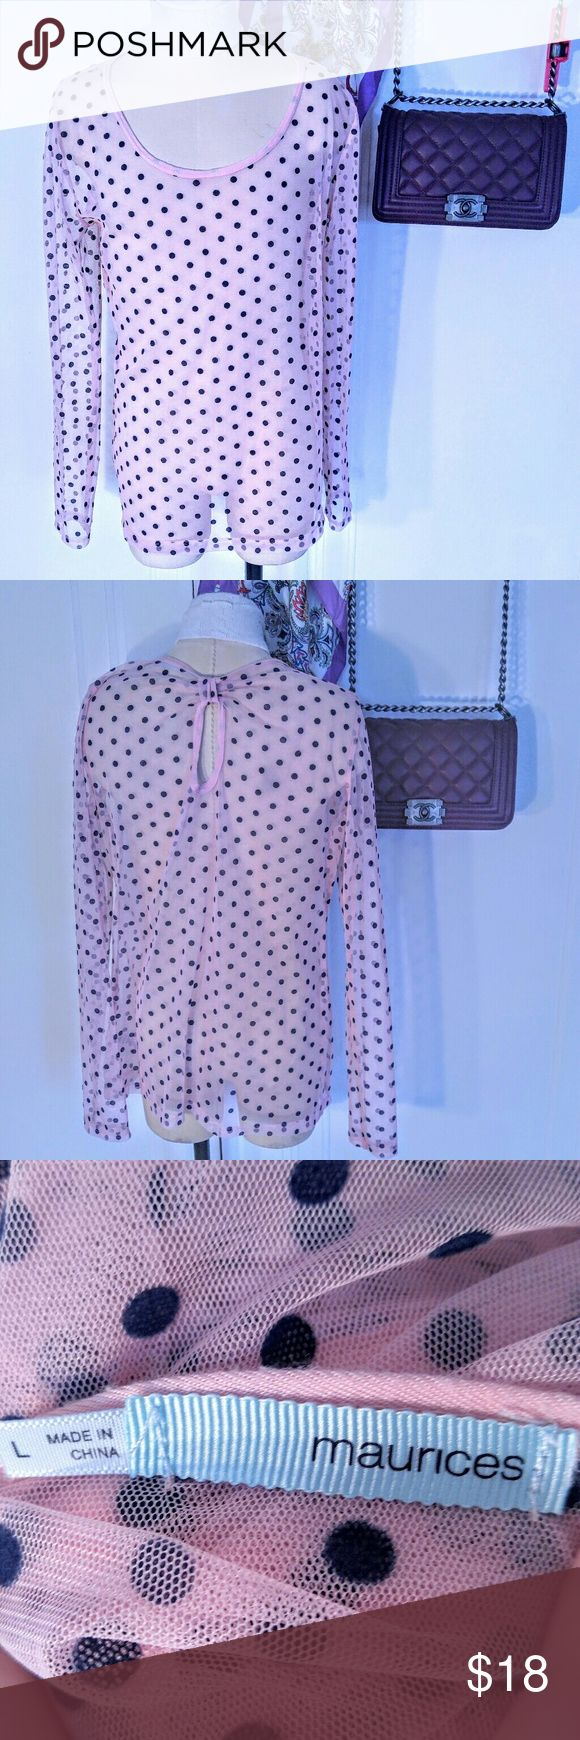 Sheer Polka Dot Long Sleeve Bow Back Shirt Sheer Polka Dot Long Sleeve Bow Back Shirt Maurices top size L in excellent condition. Maurices Tops Tees - Long Sleeve